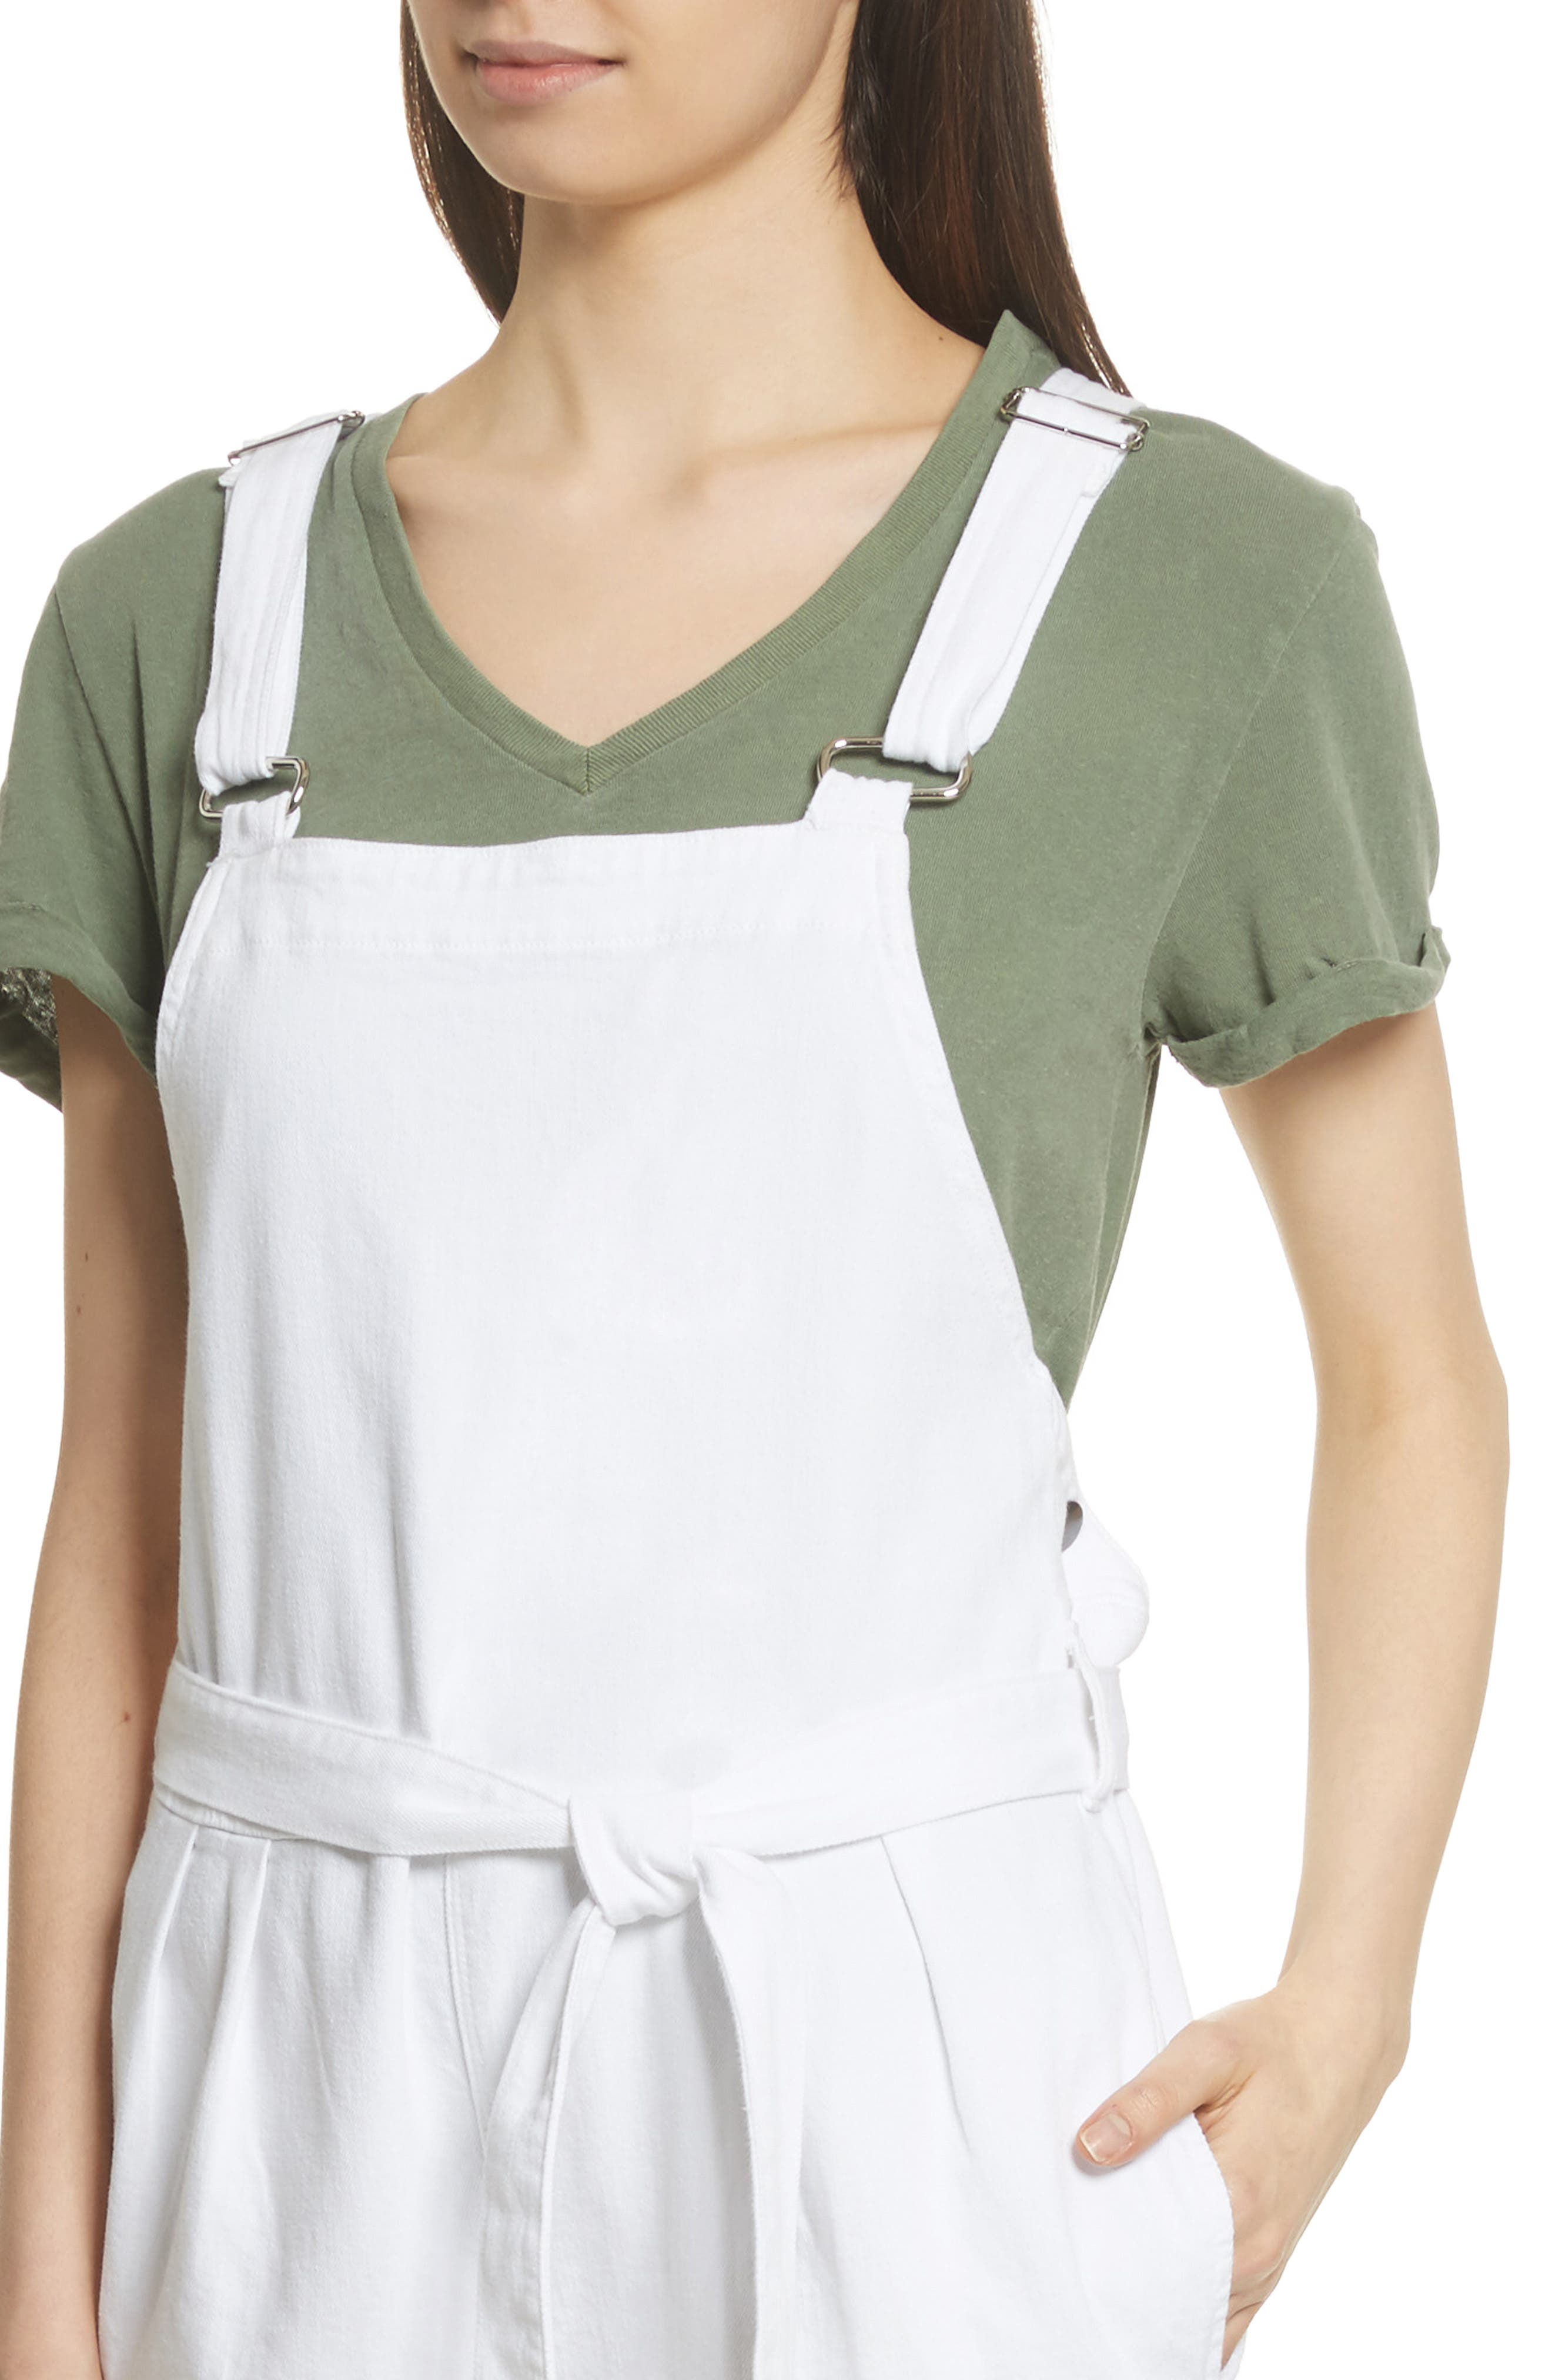 Le Paperbag Belted Denim Overalls,                             Alternate thumbnail 4, color,                             199